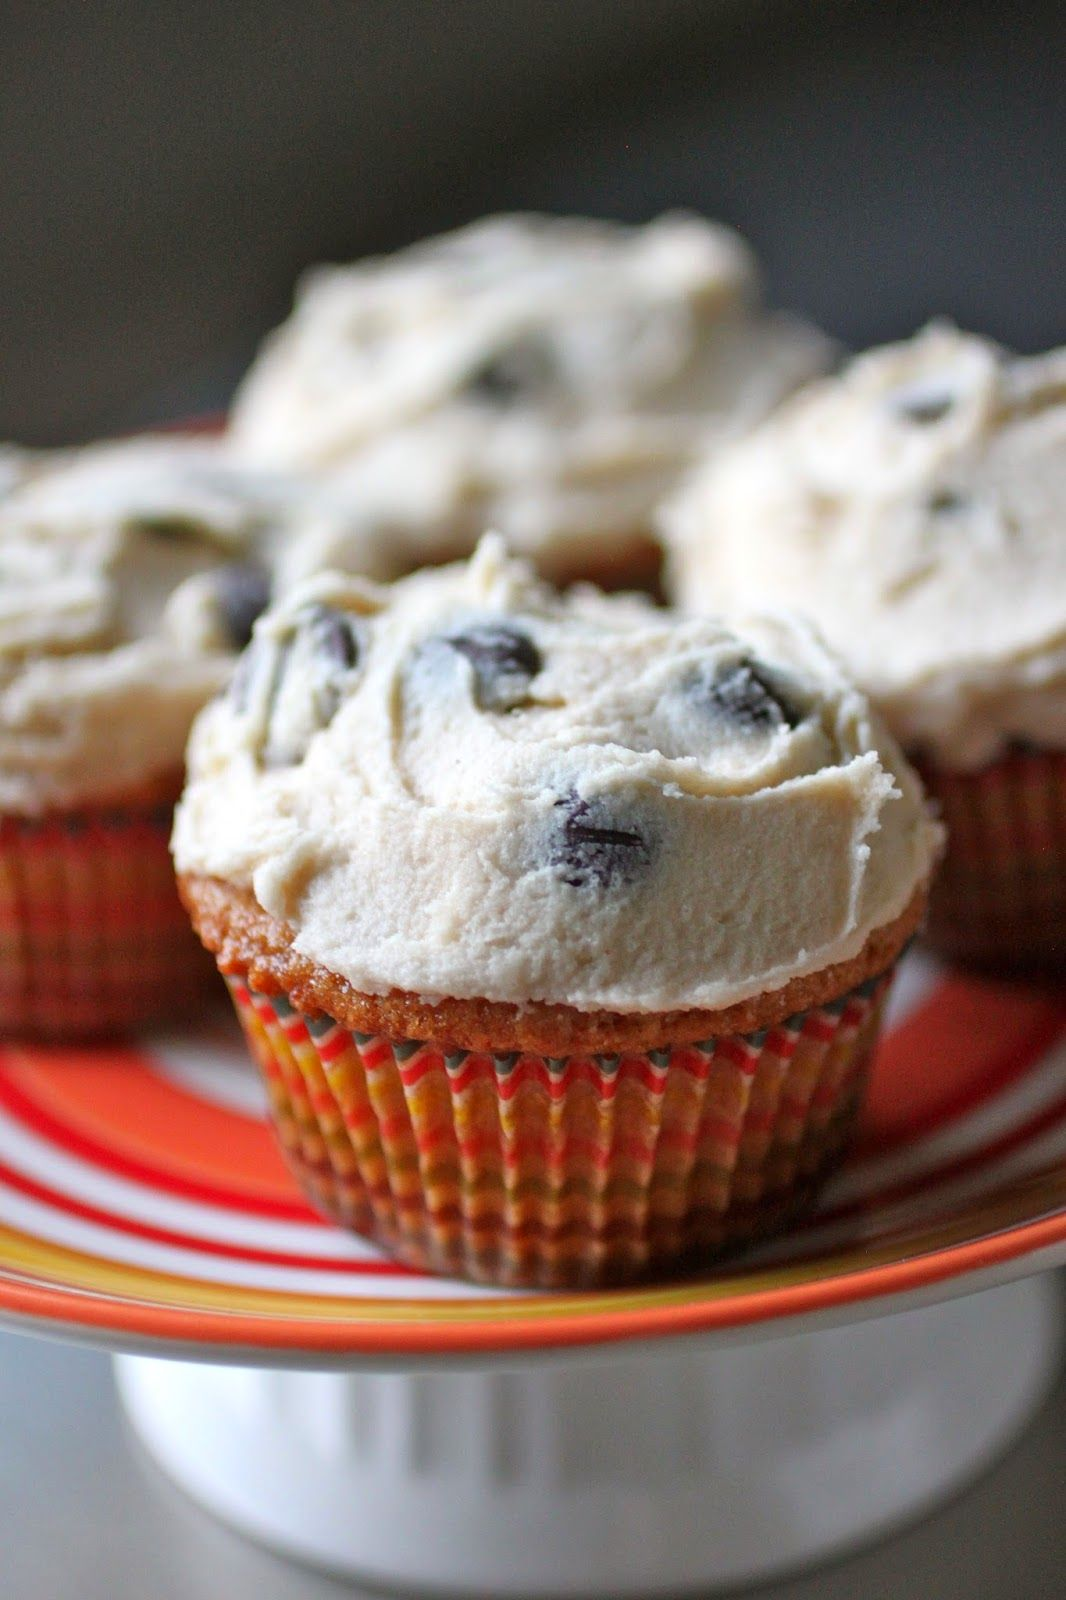 Brown sugar cupcakes with chocolate chip cookie dough